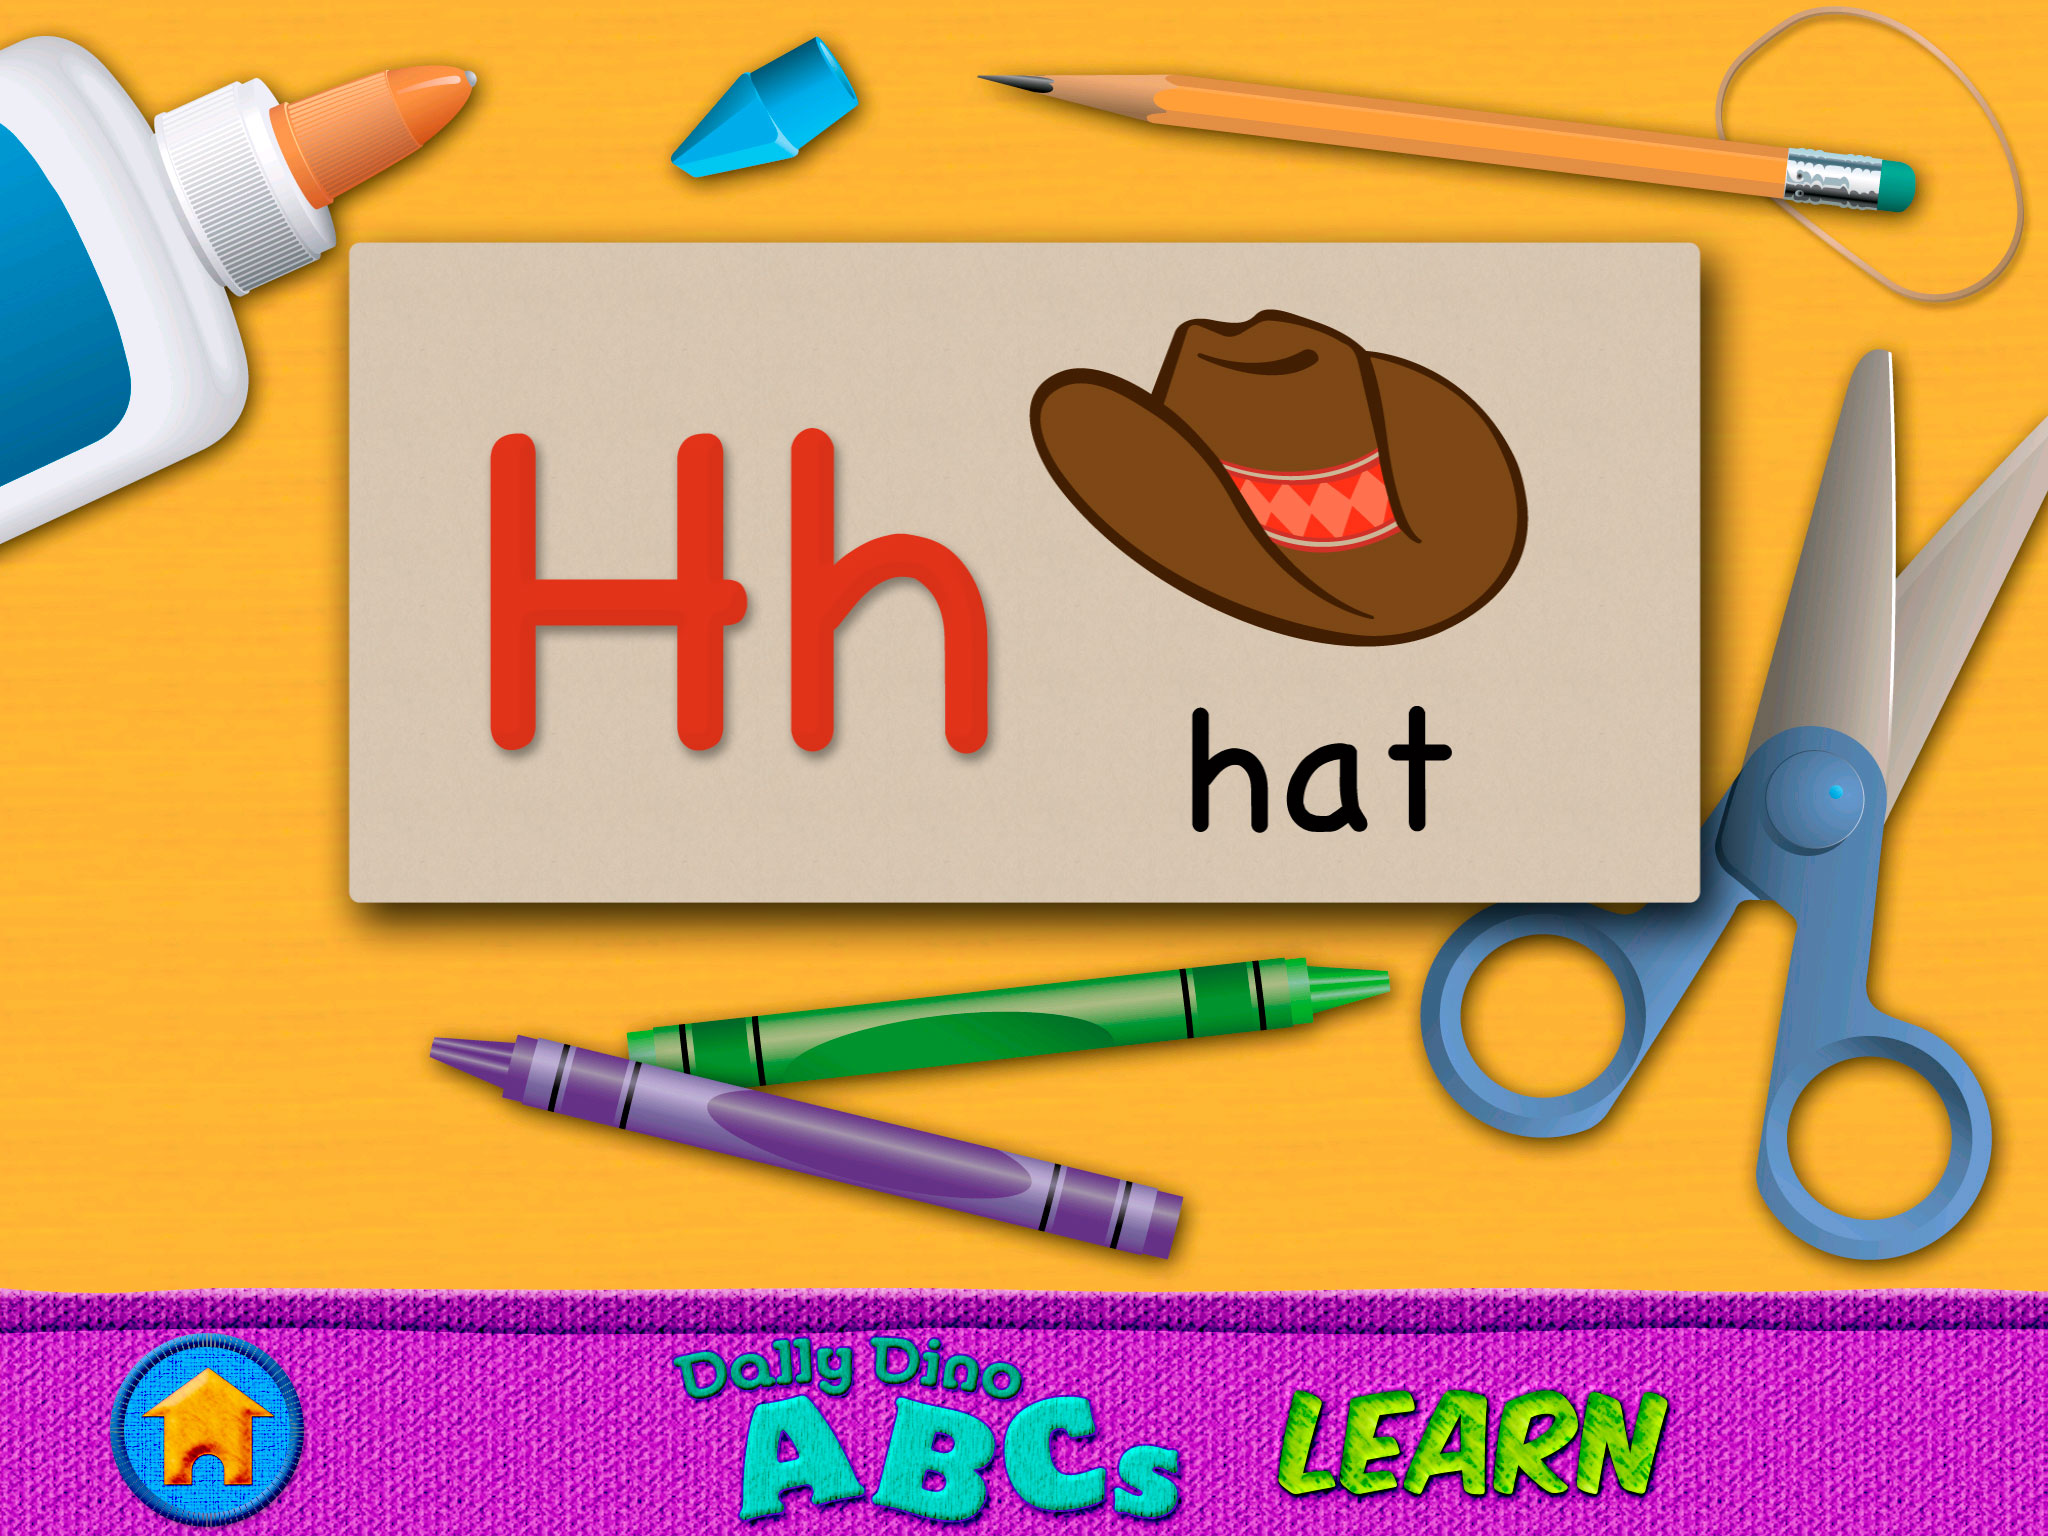 abcs with dally dino preschool kids learn the alphabet with a fun